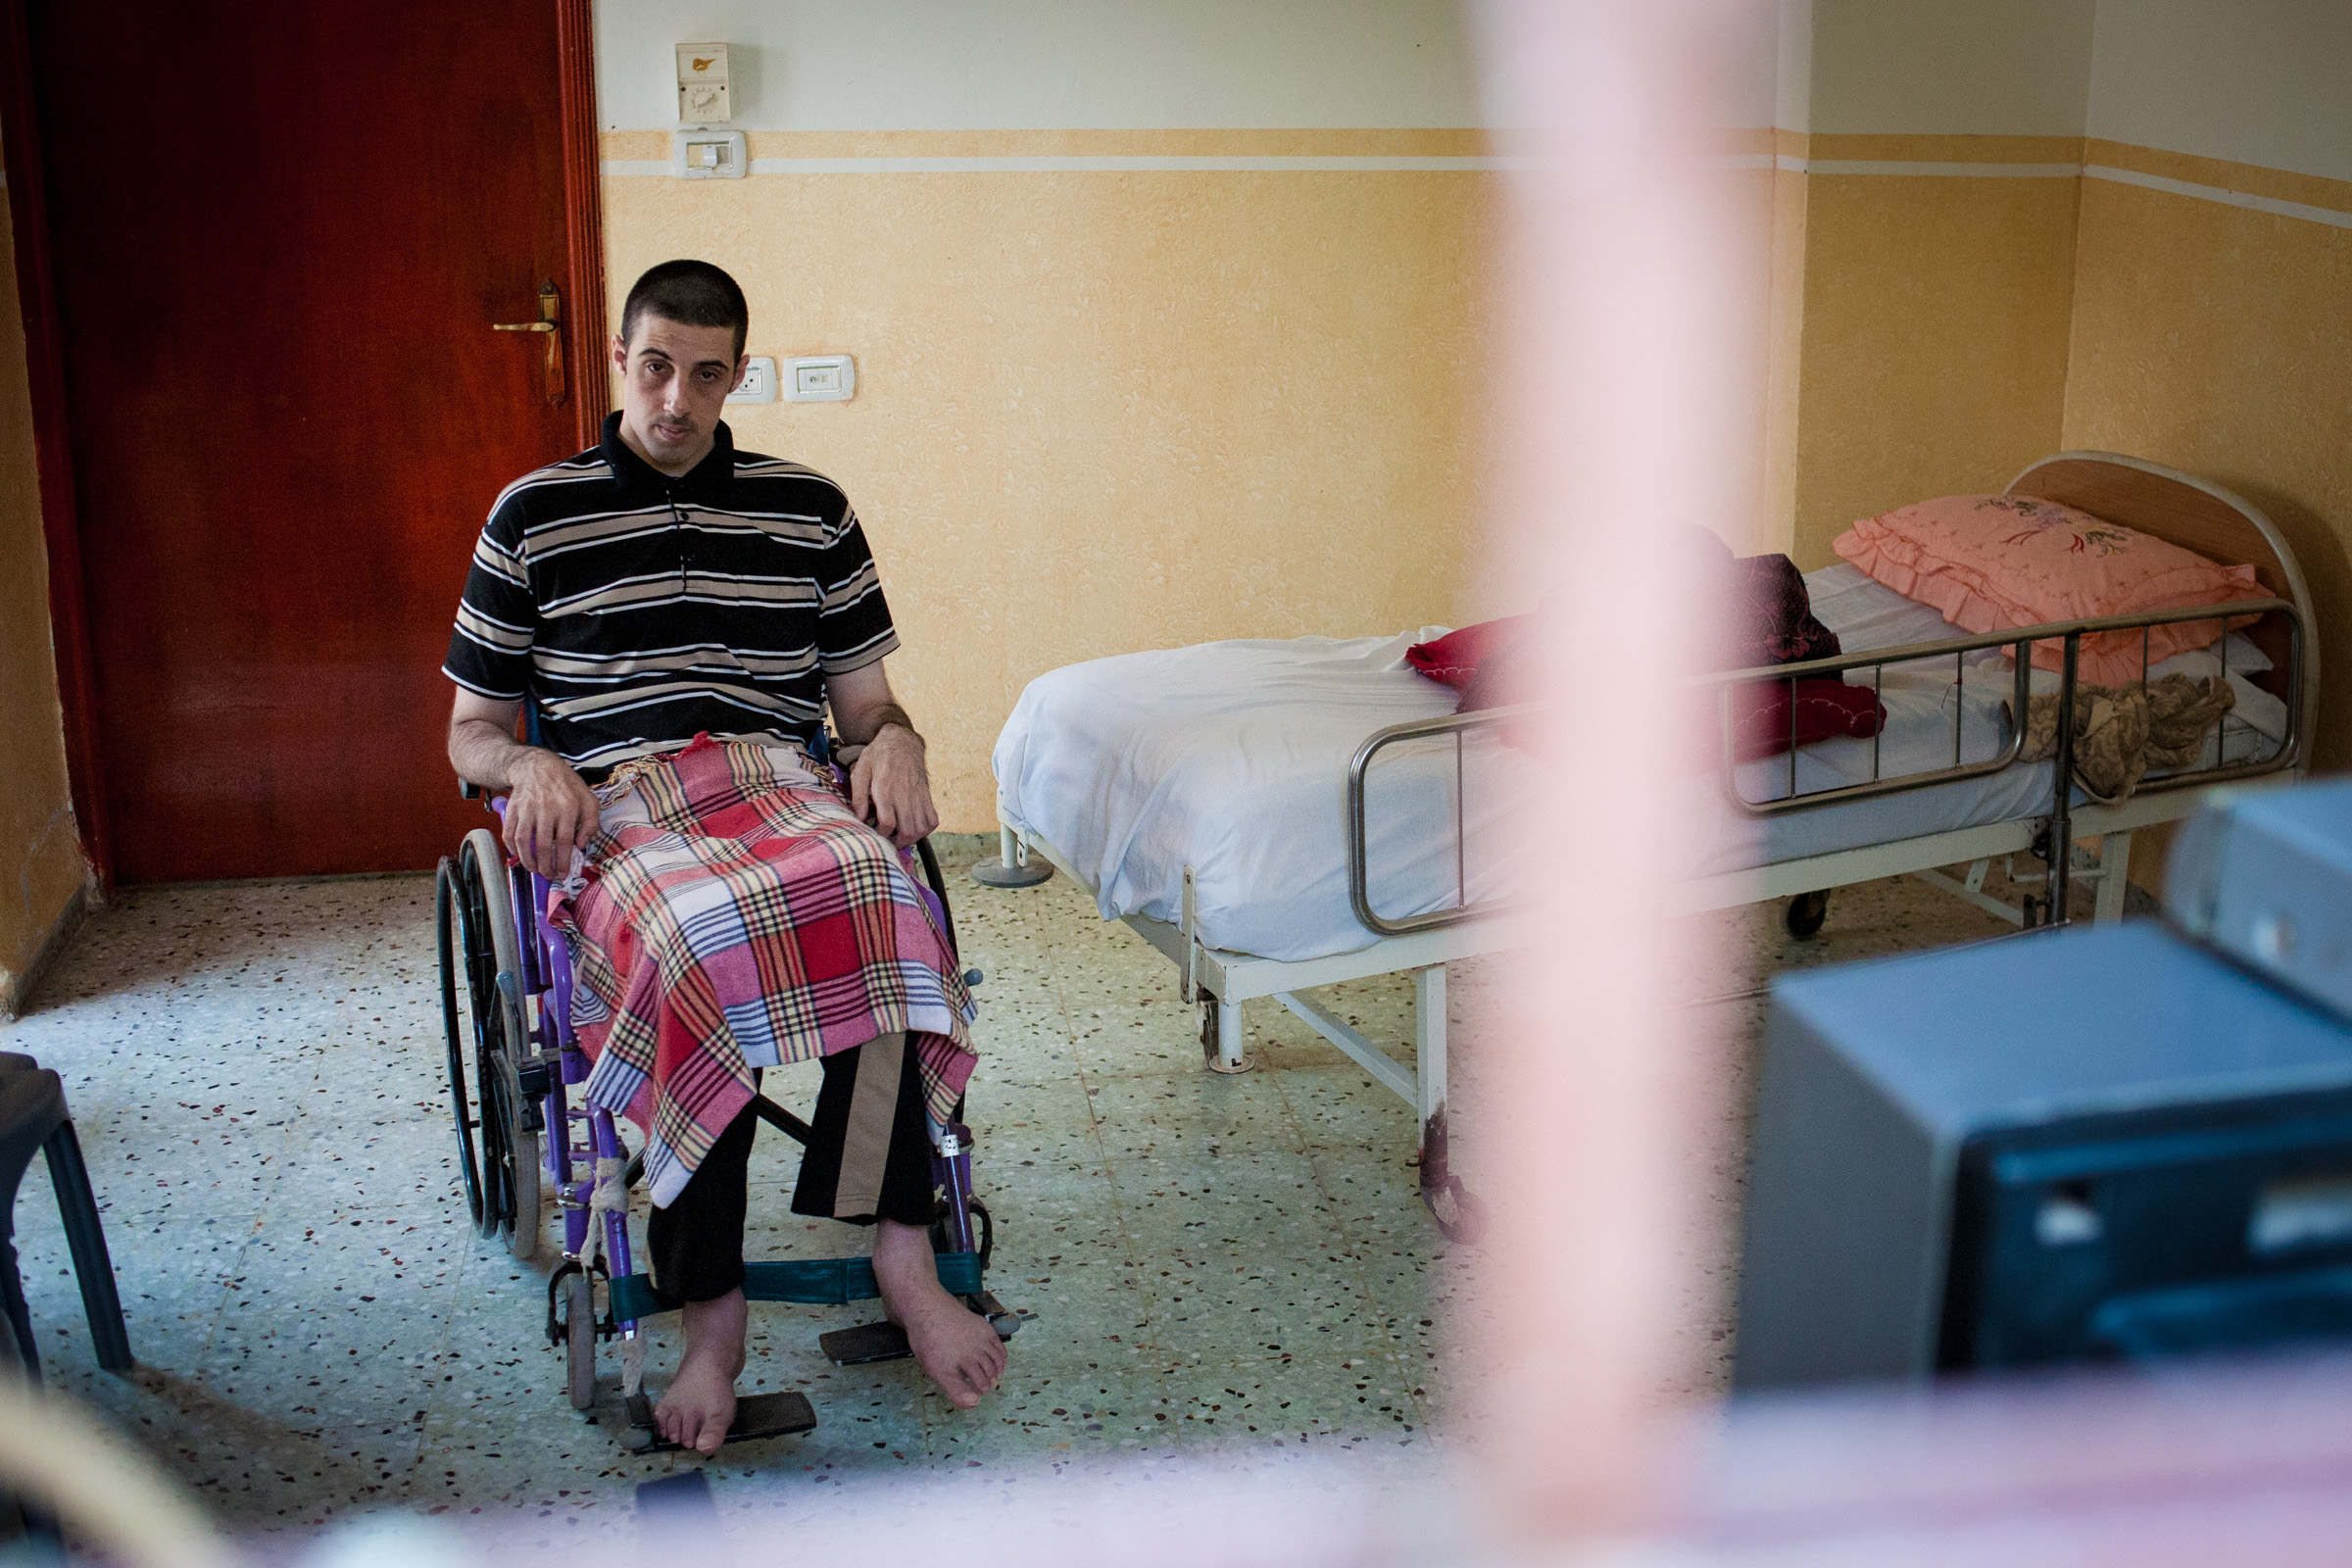 Mohamad Fawzi Yousif Metawé became paralyzed from the waist down, after being shot by israeli settlers at a age of 18.